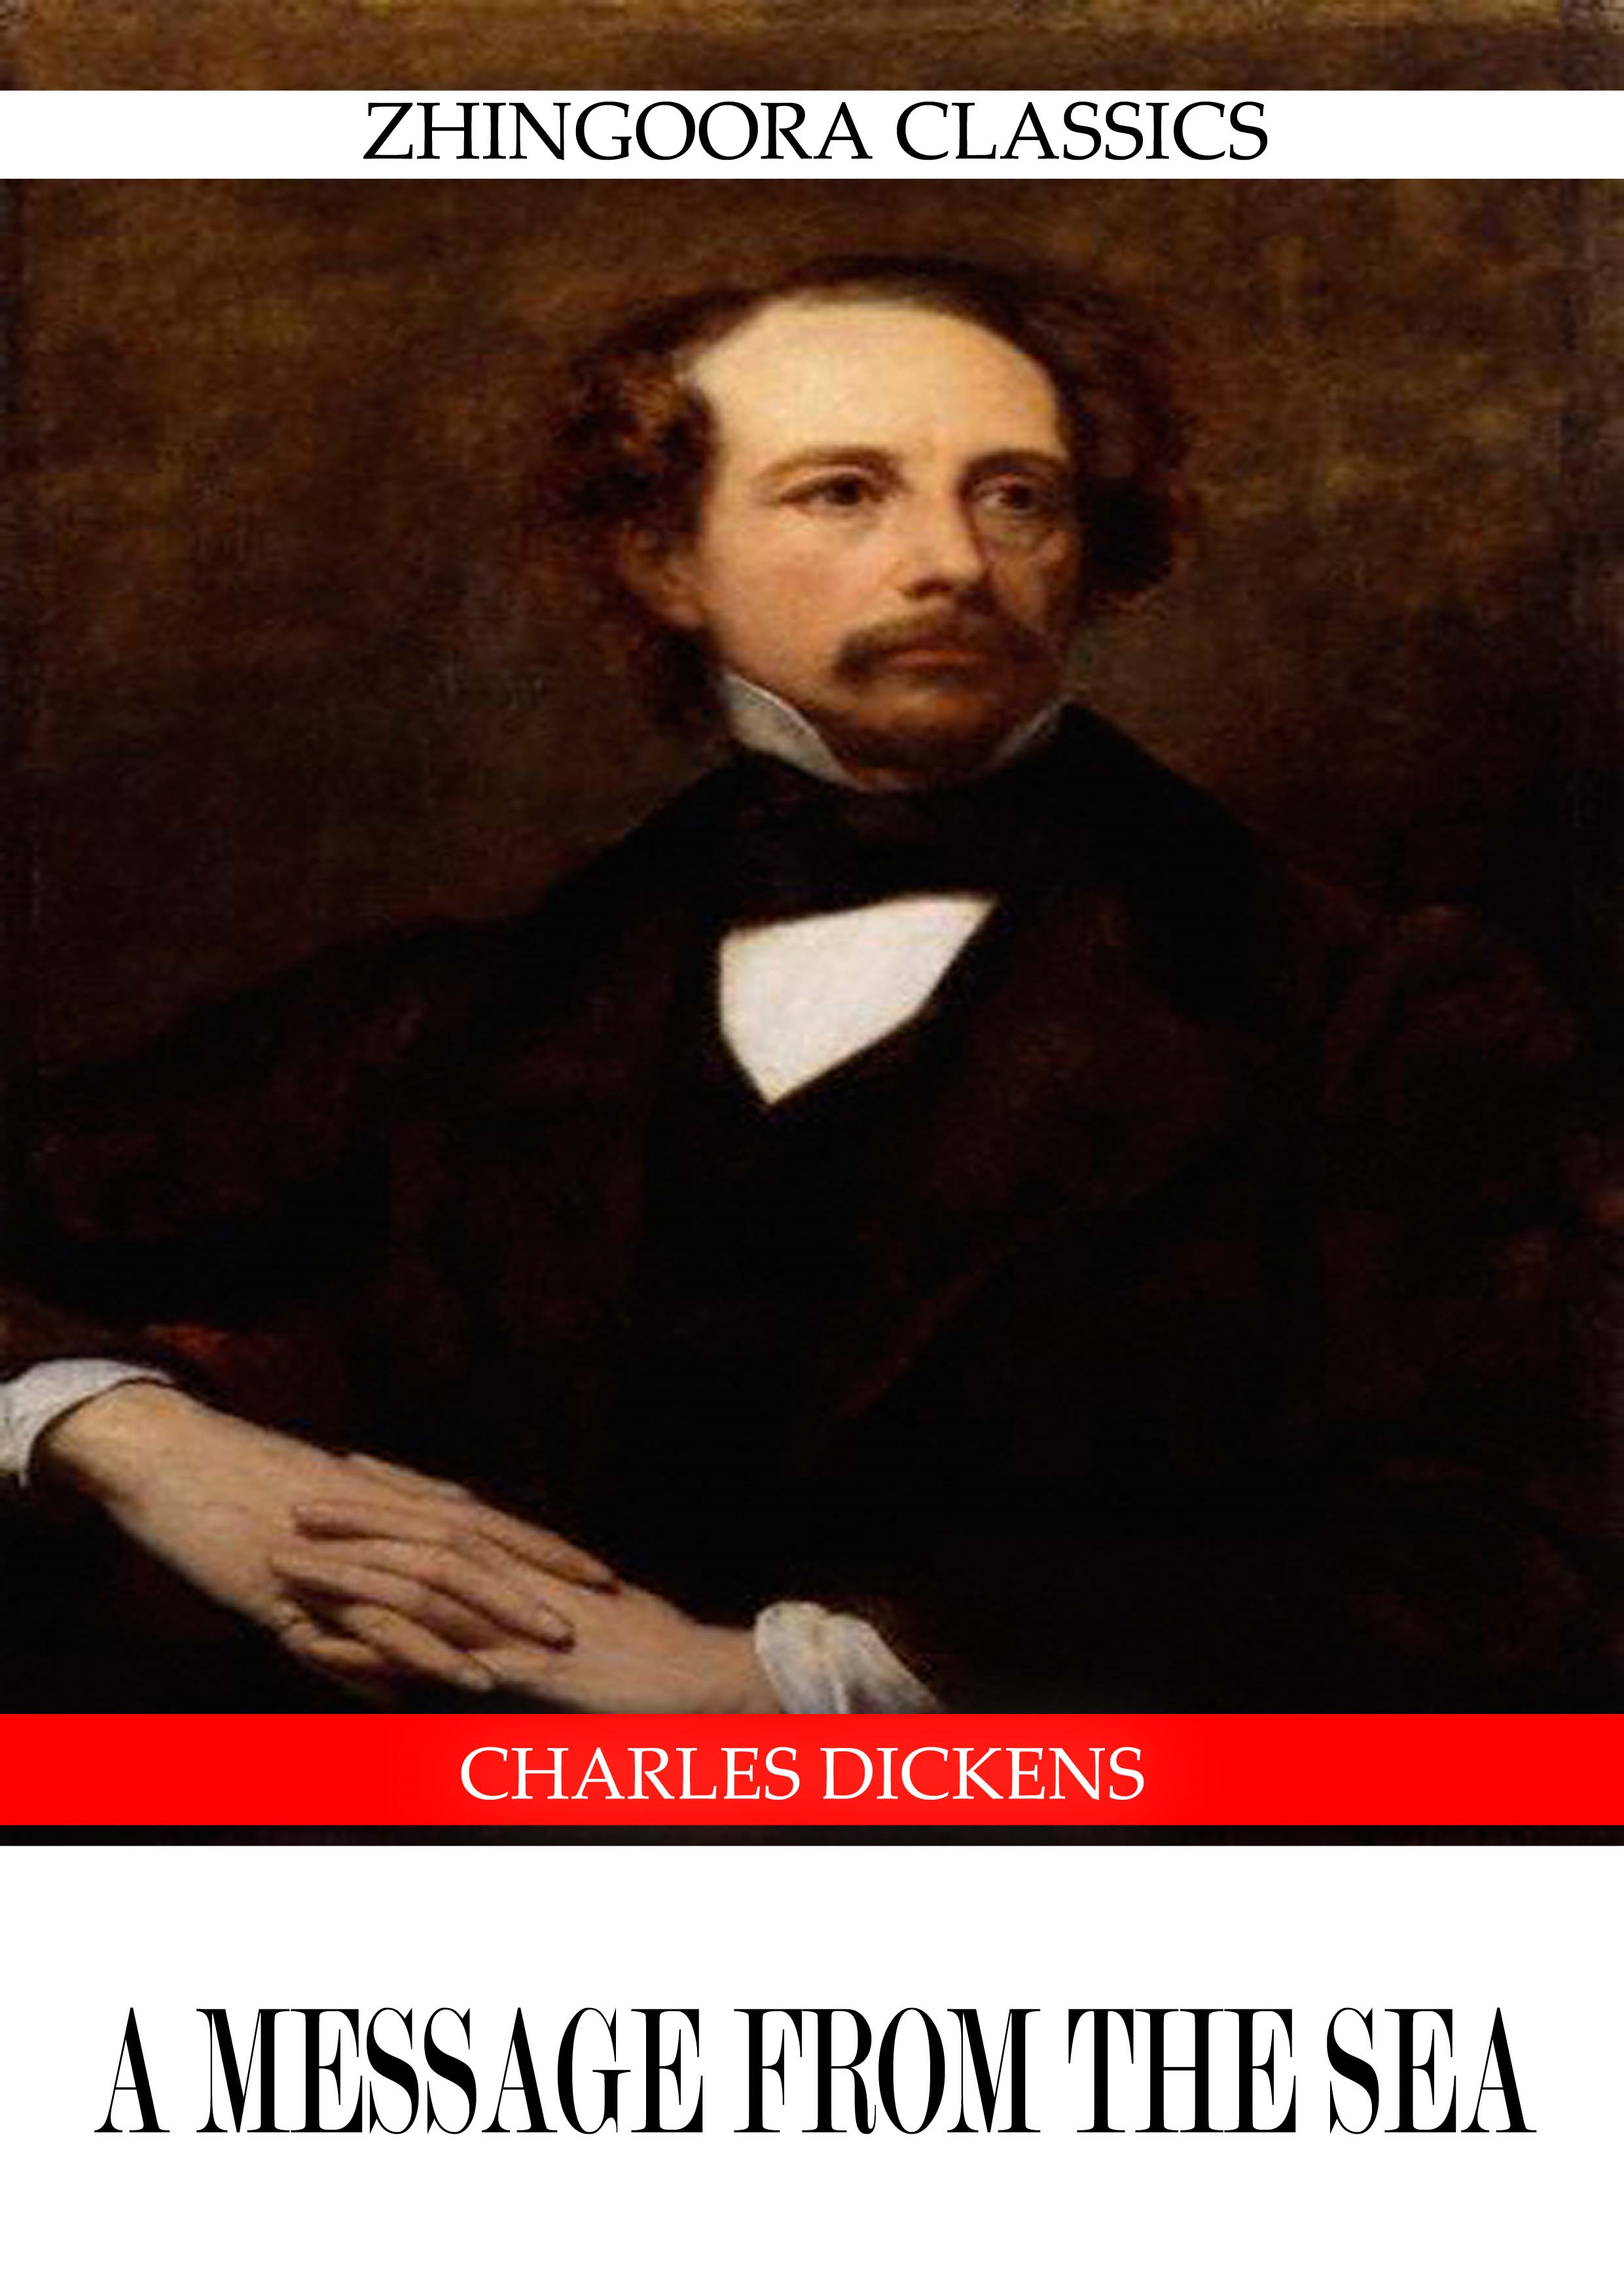 Charles Dickens - A MESSAGE FROM THE SEA